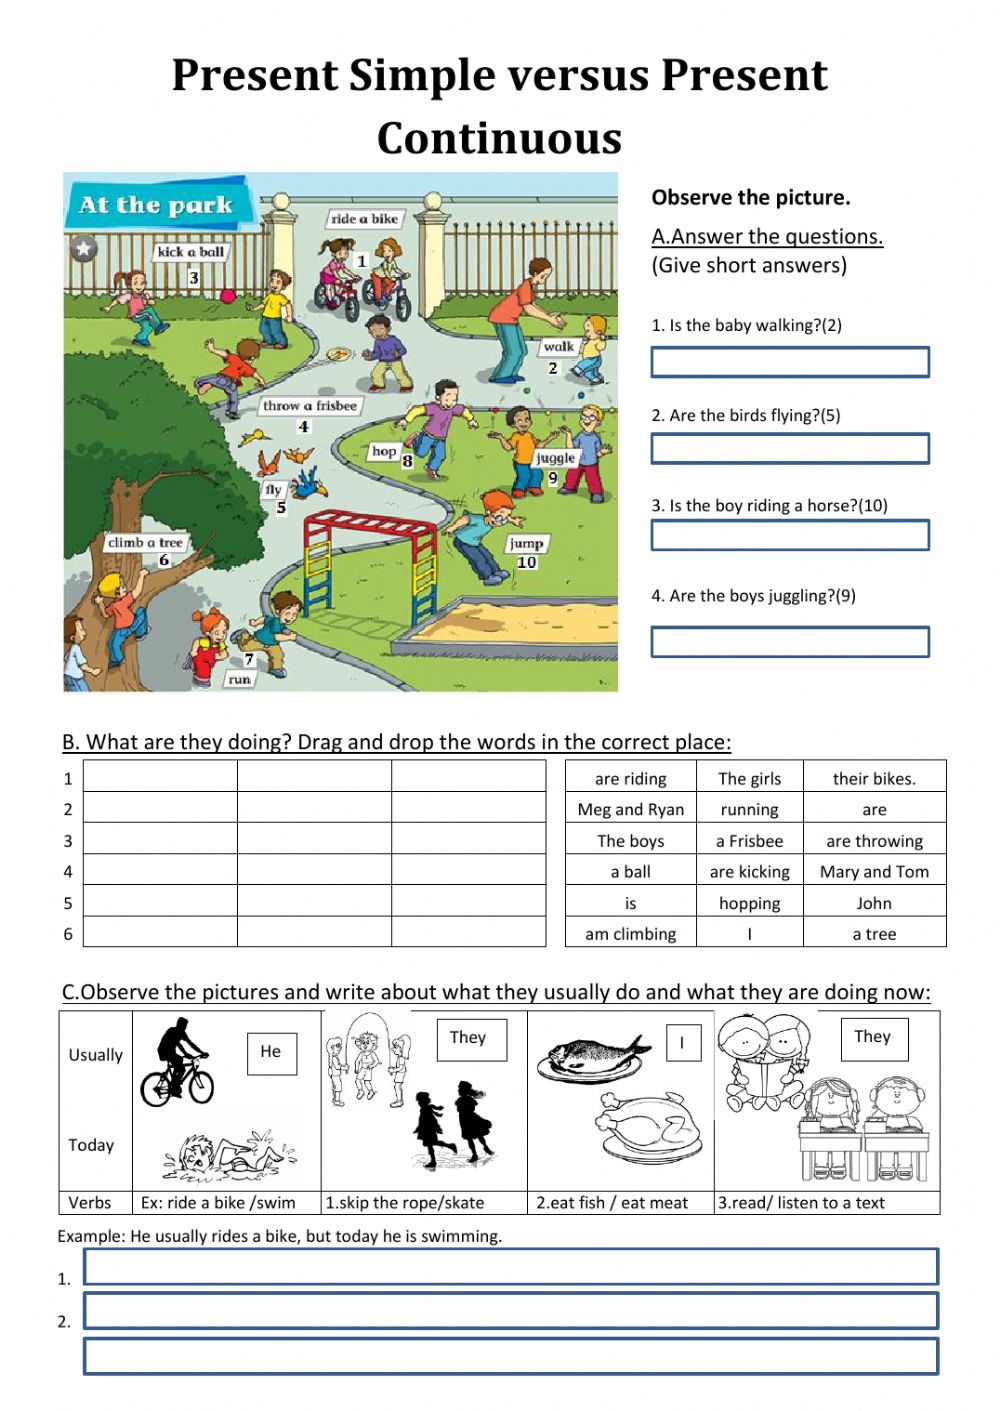 Worksheets Present Progressive Worksheets present simple and continuous interactive worksheets worksheet versus continuous